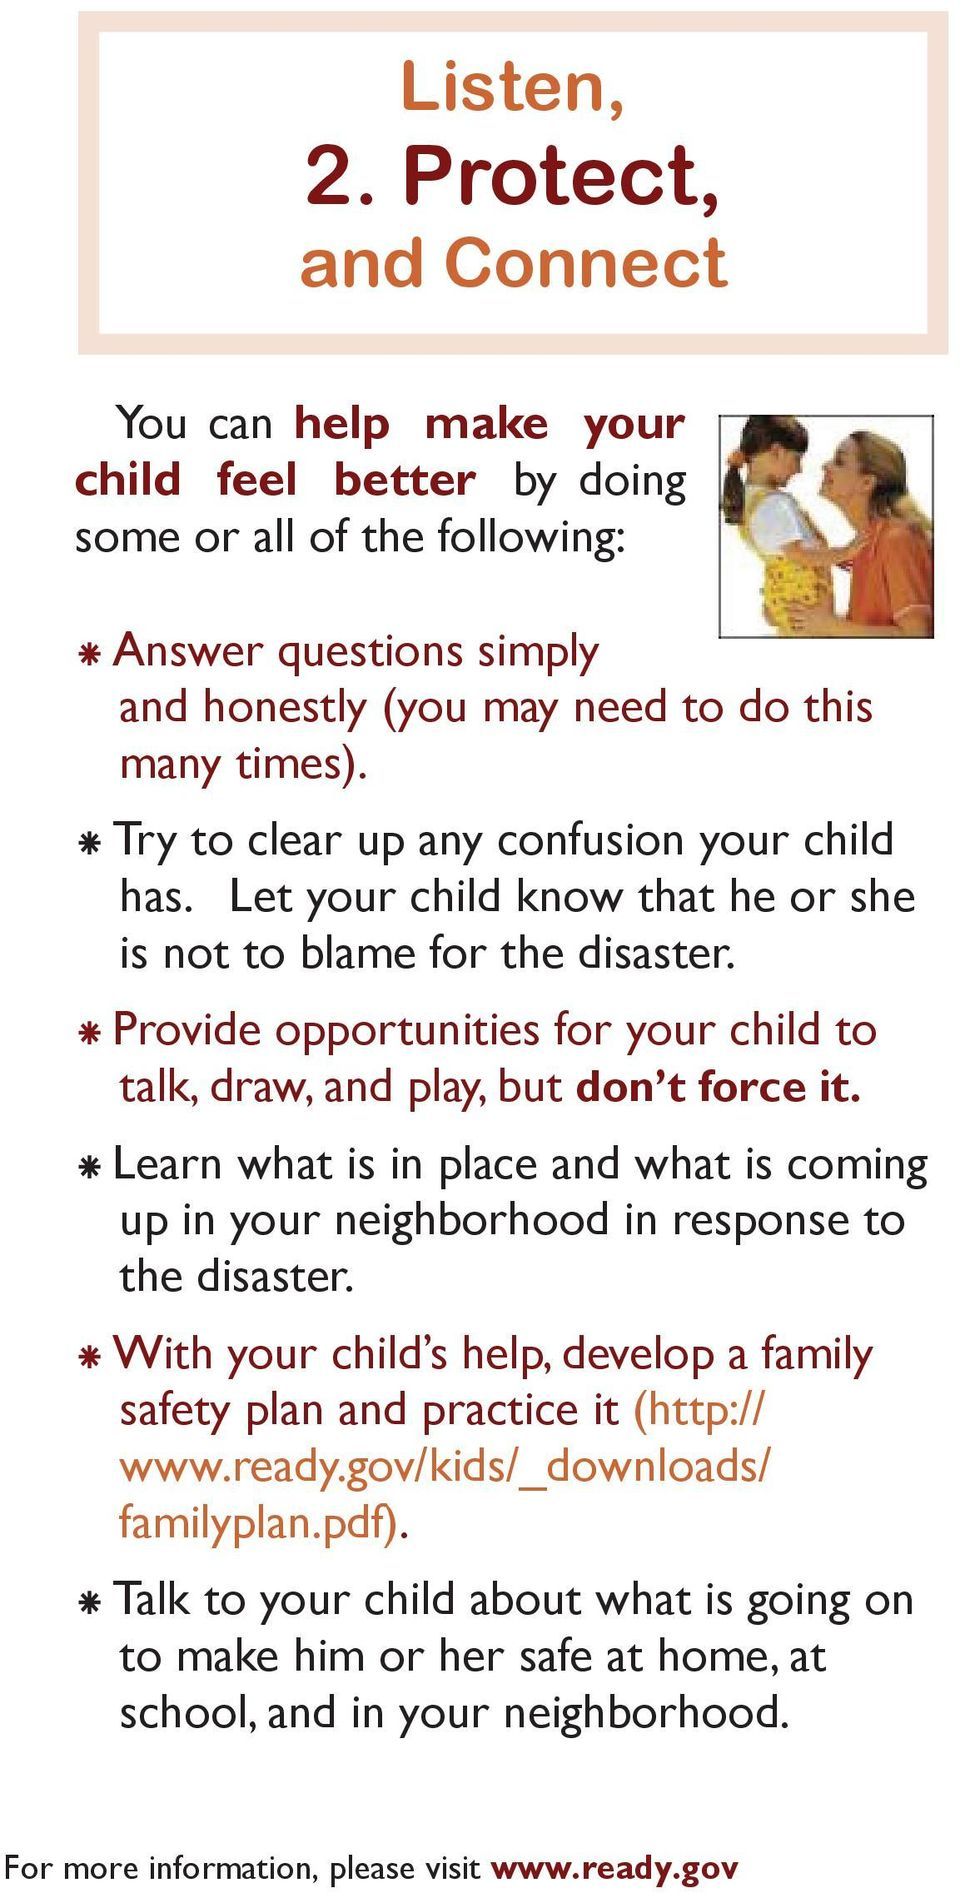 Try to clear up any confusion your child has. Let your child know that he or she is not to blame for the disaster.